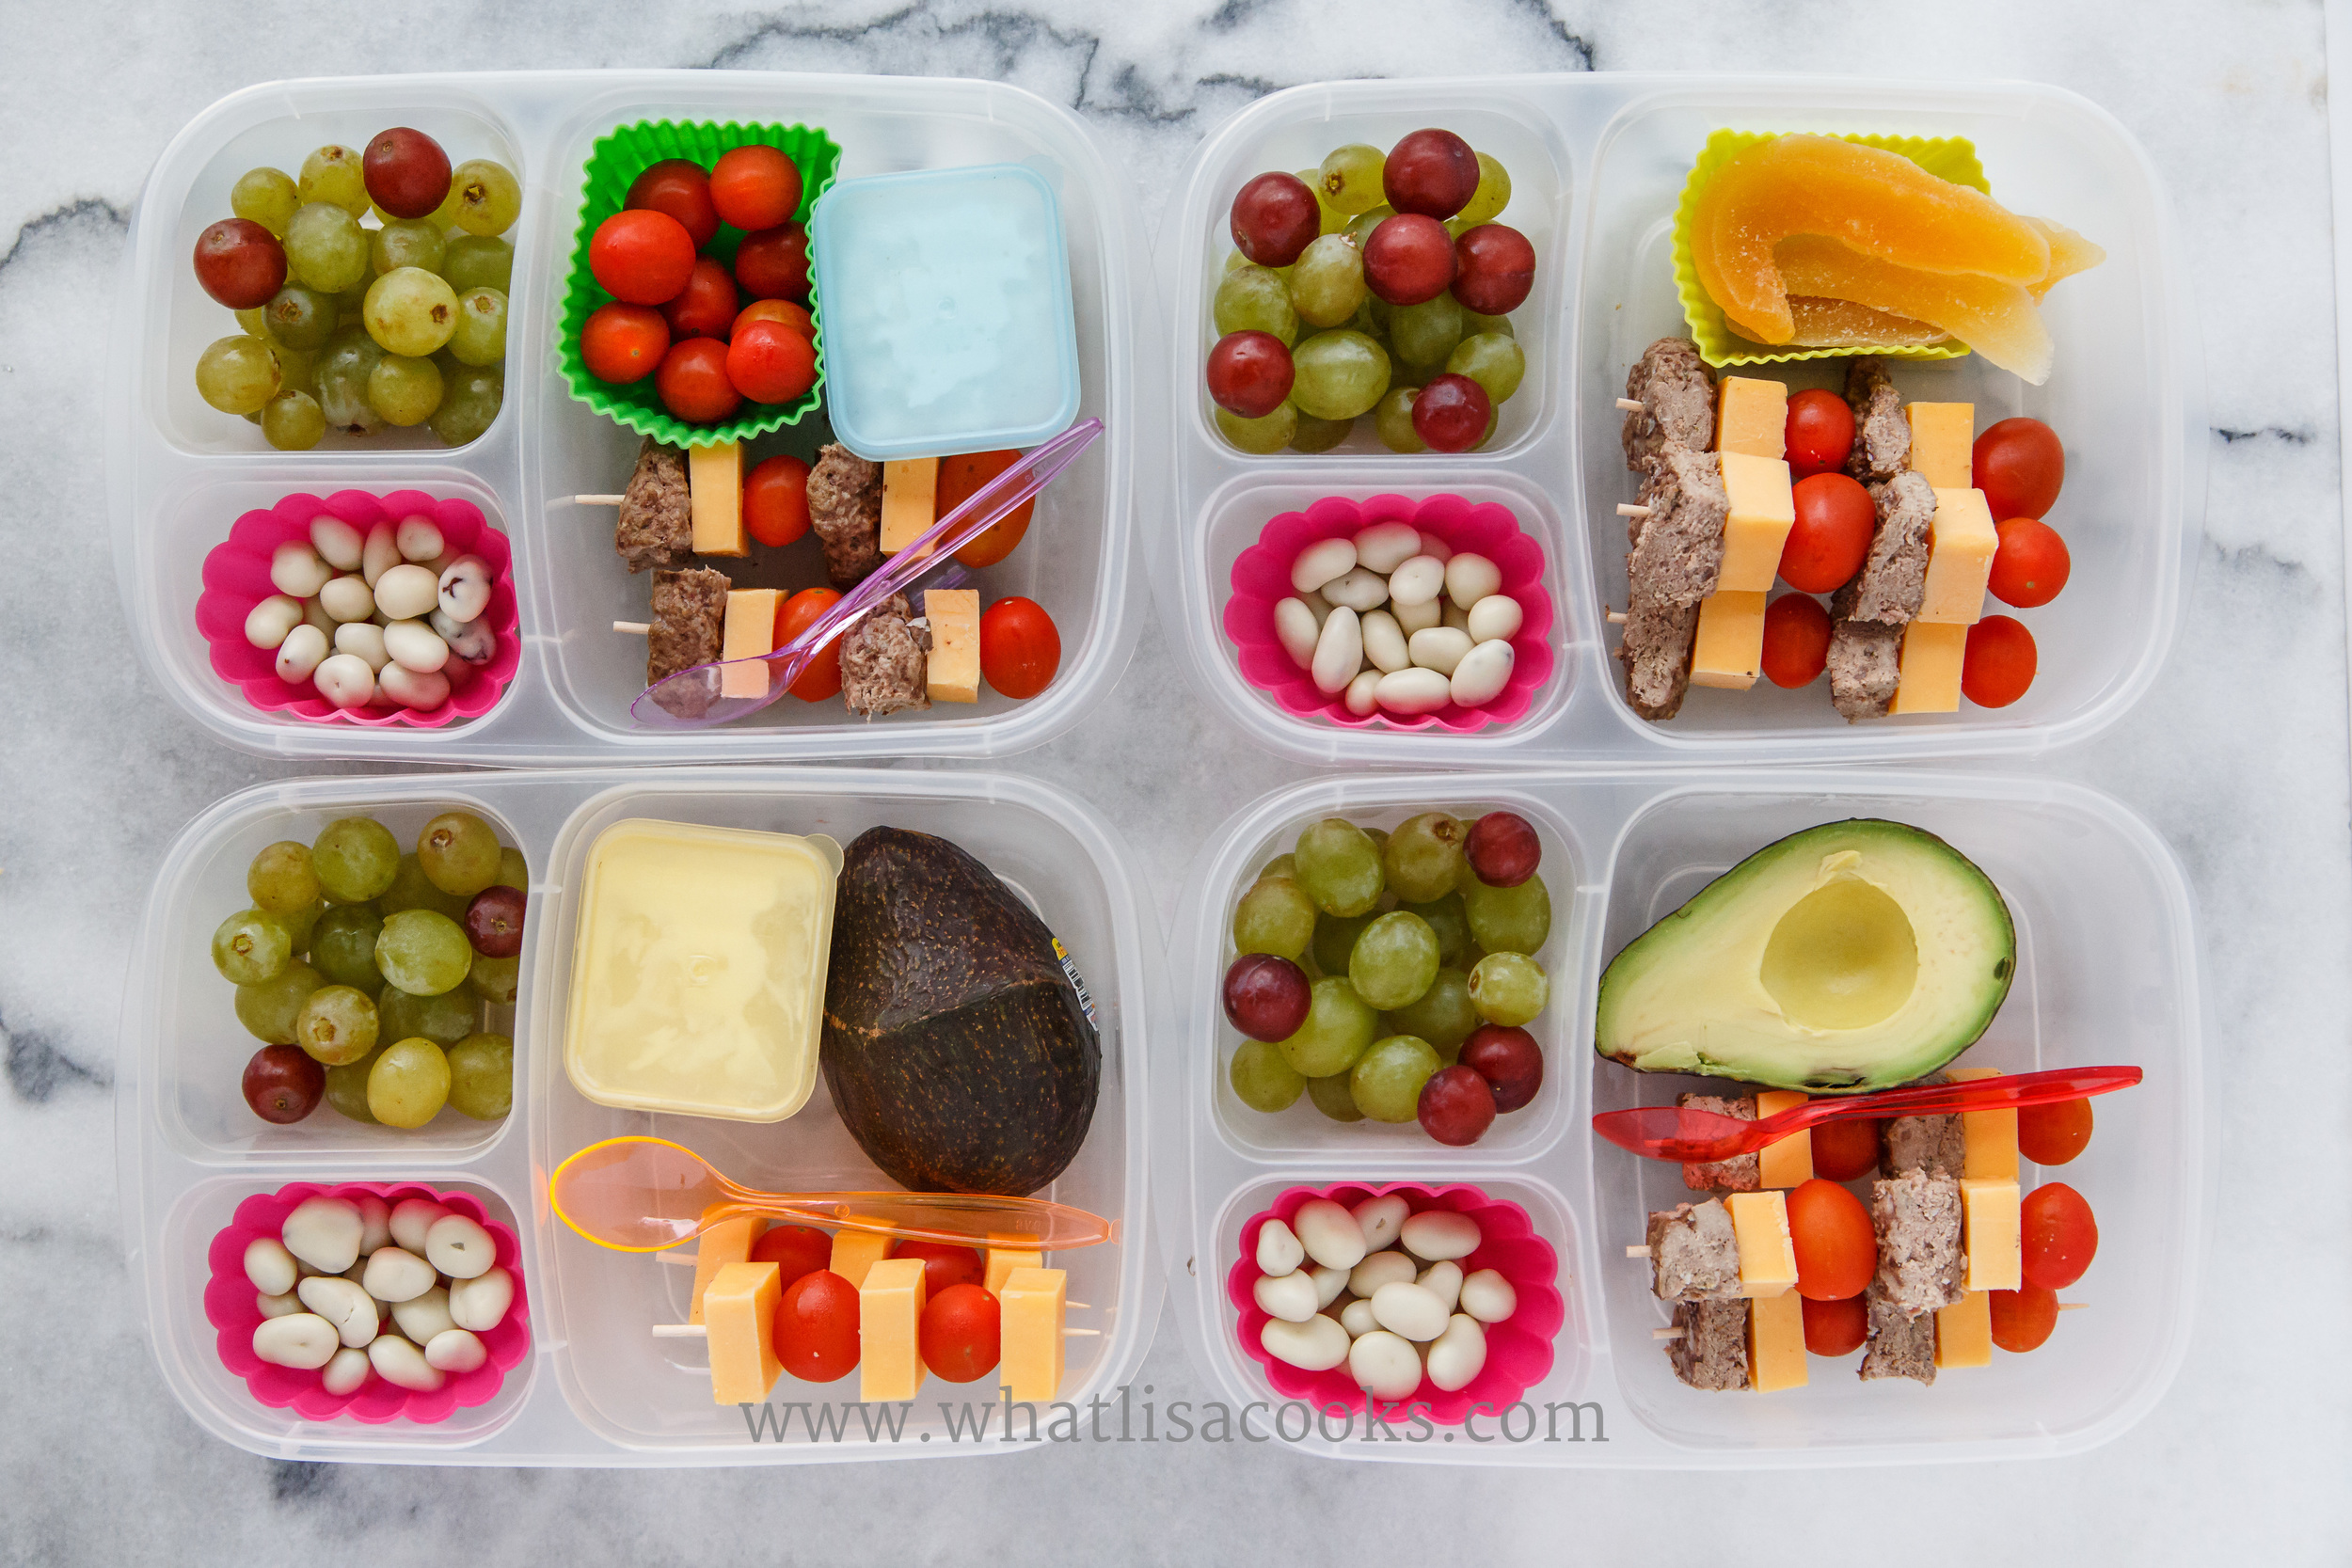 Cheeseburger skewers: bites of leftover hamburger patty, cheese, and tomato. With grapes and yogurt raisins. Two have half an avocado, one has cottage cheese, one has dried mango. Packed in  Easy Lunchboxes , with a  mini dipper ,  silicone muffin cup , and little spoon.